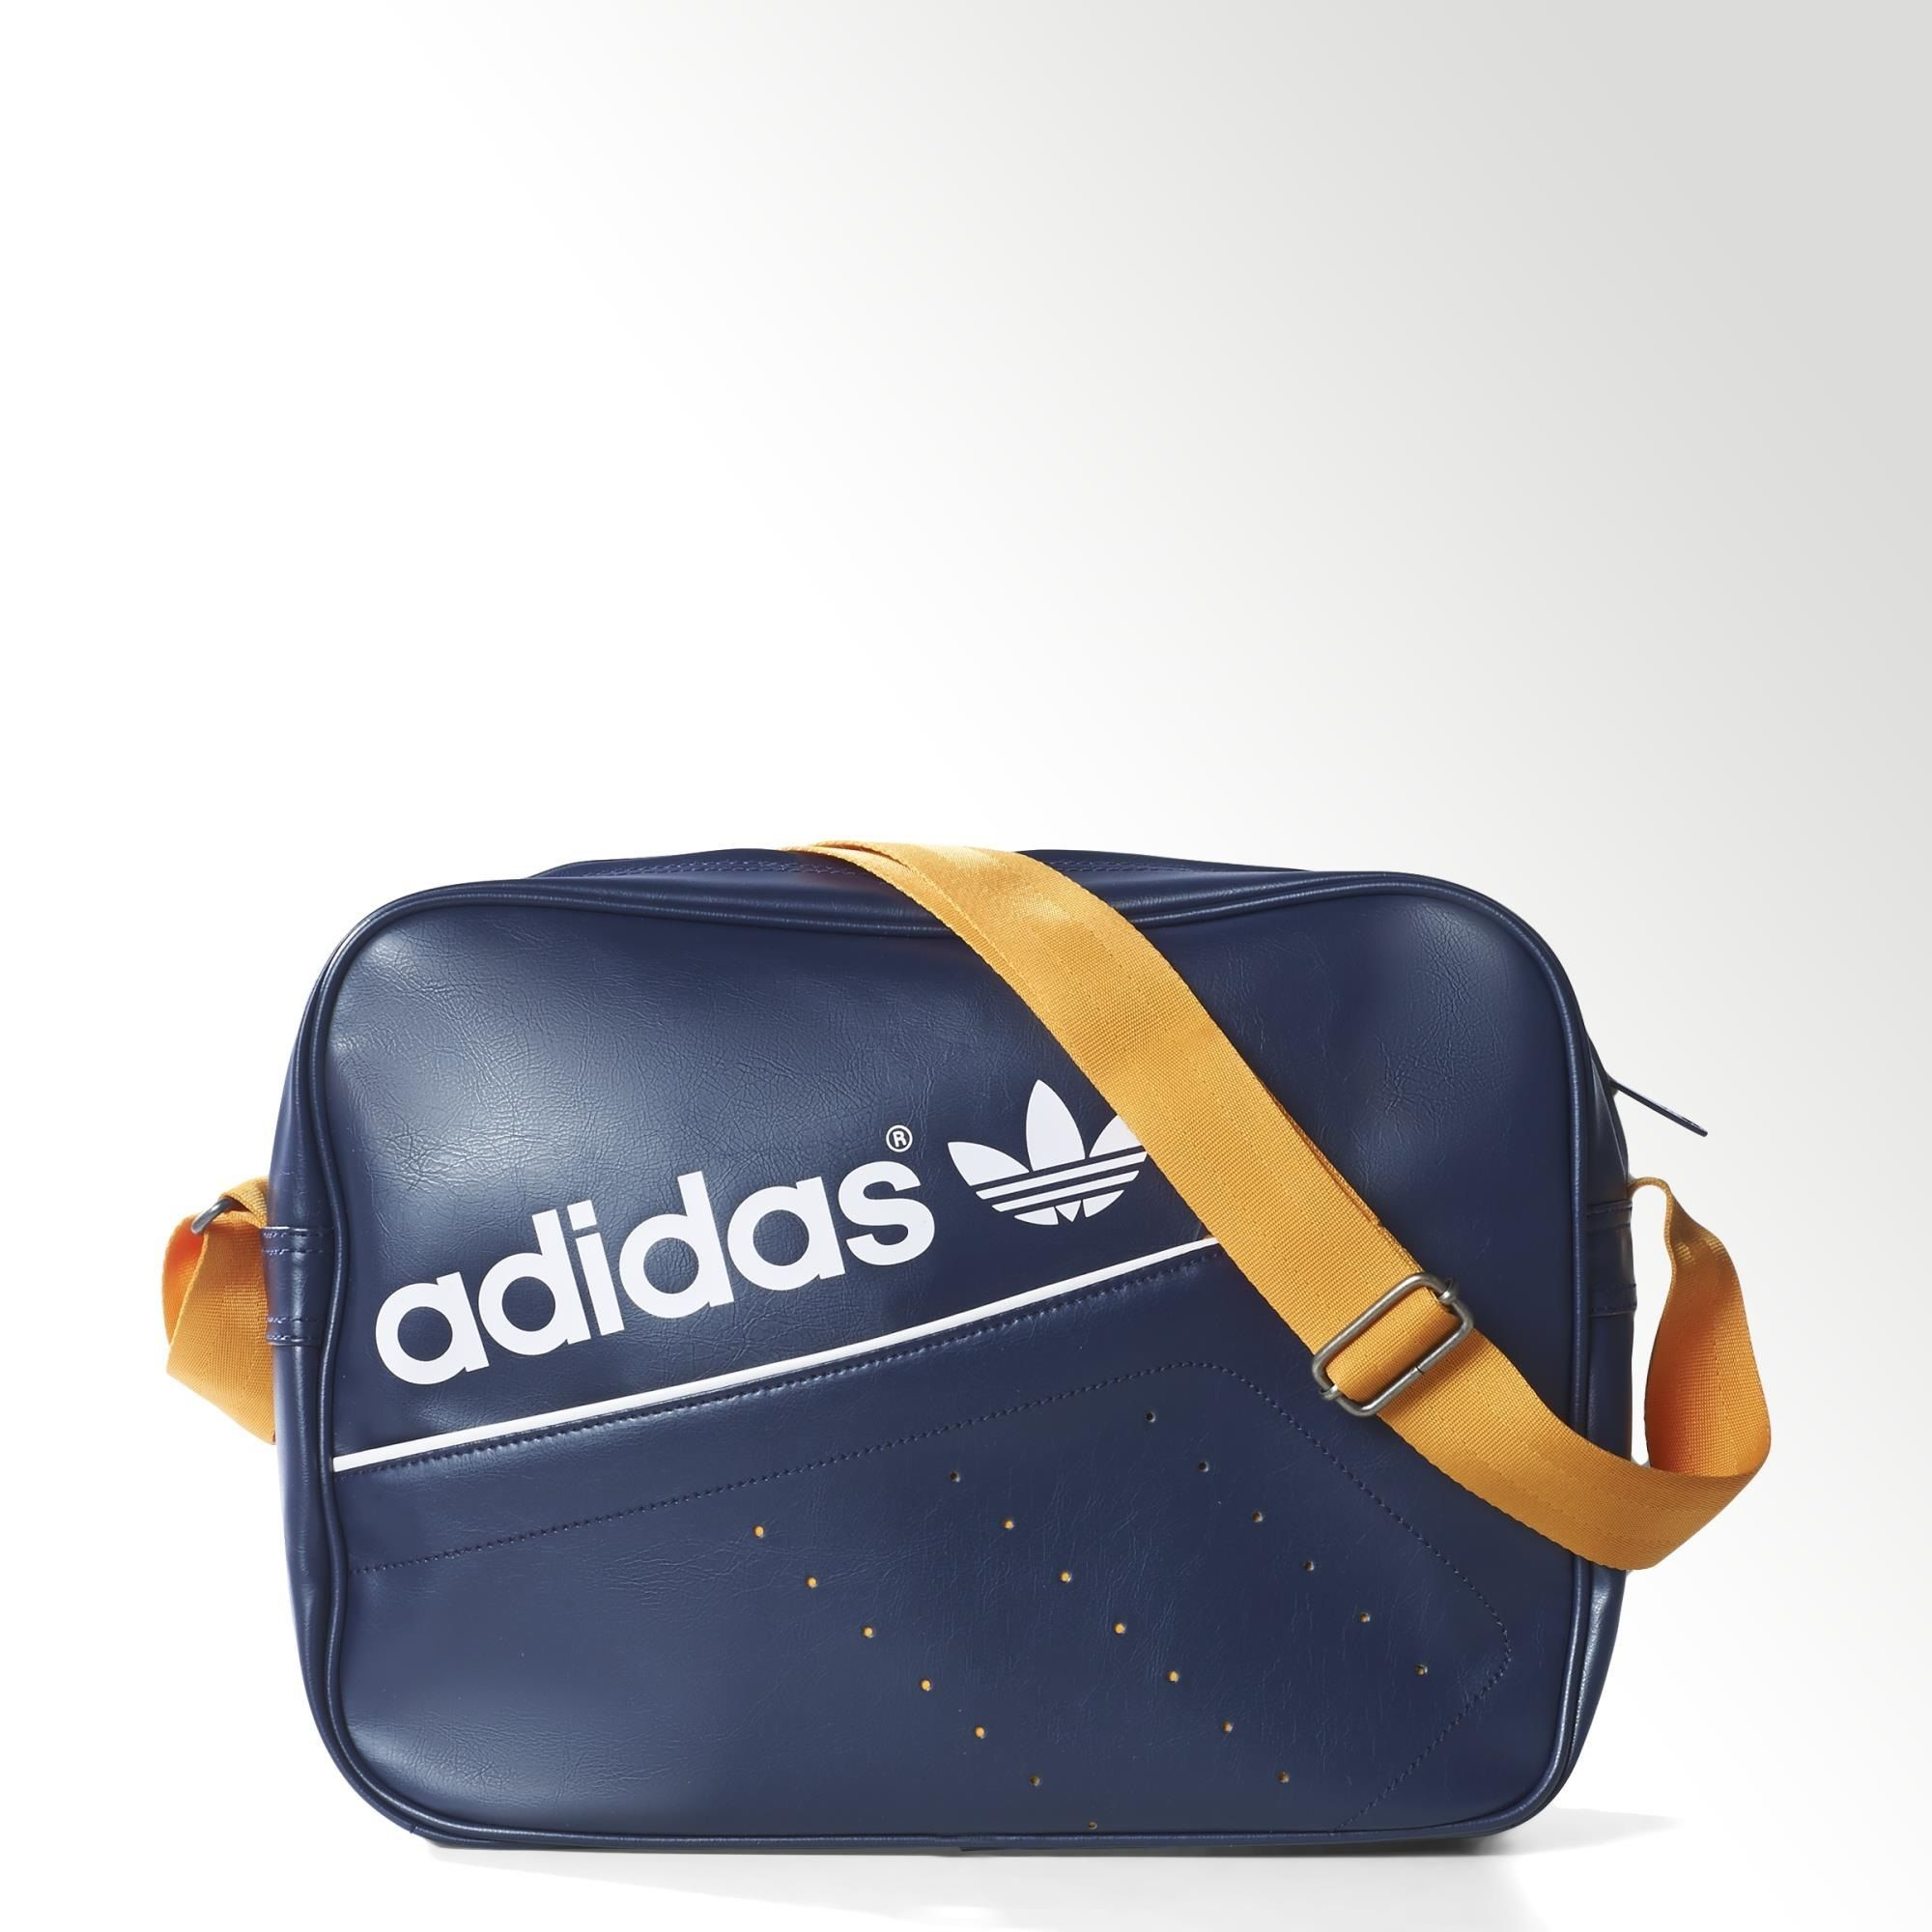 6afbe09d30 adidas - Airliner Bag Adidas Canada